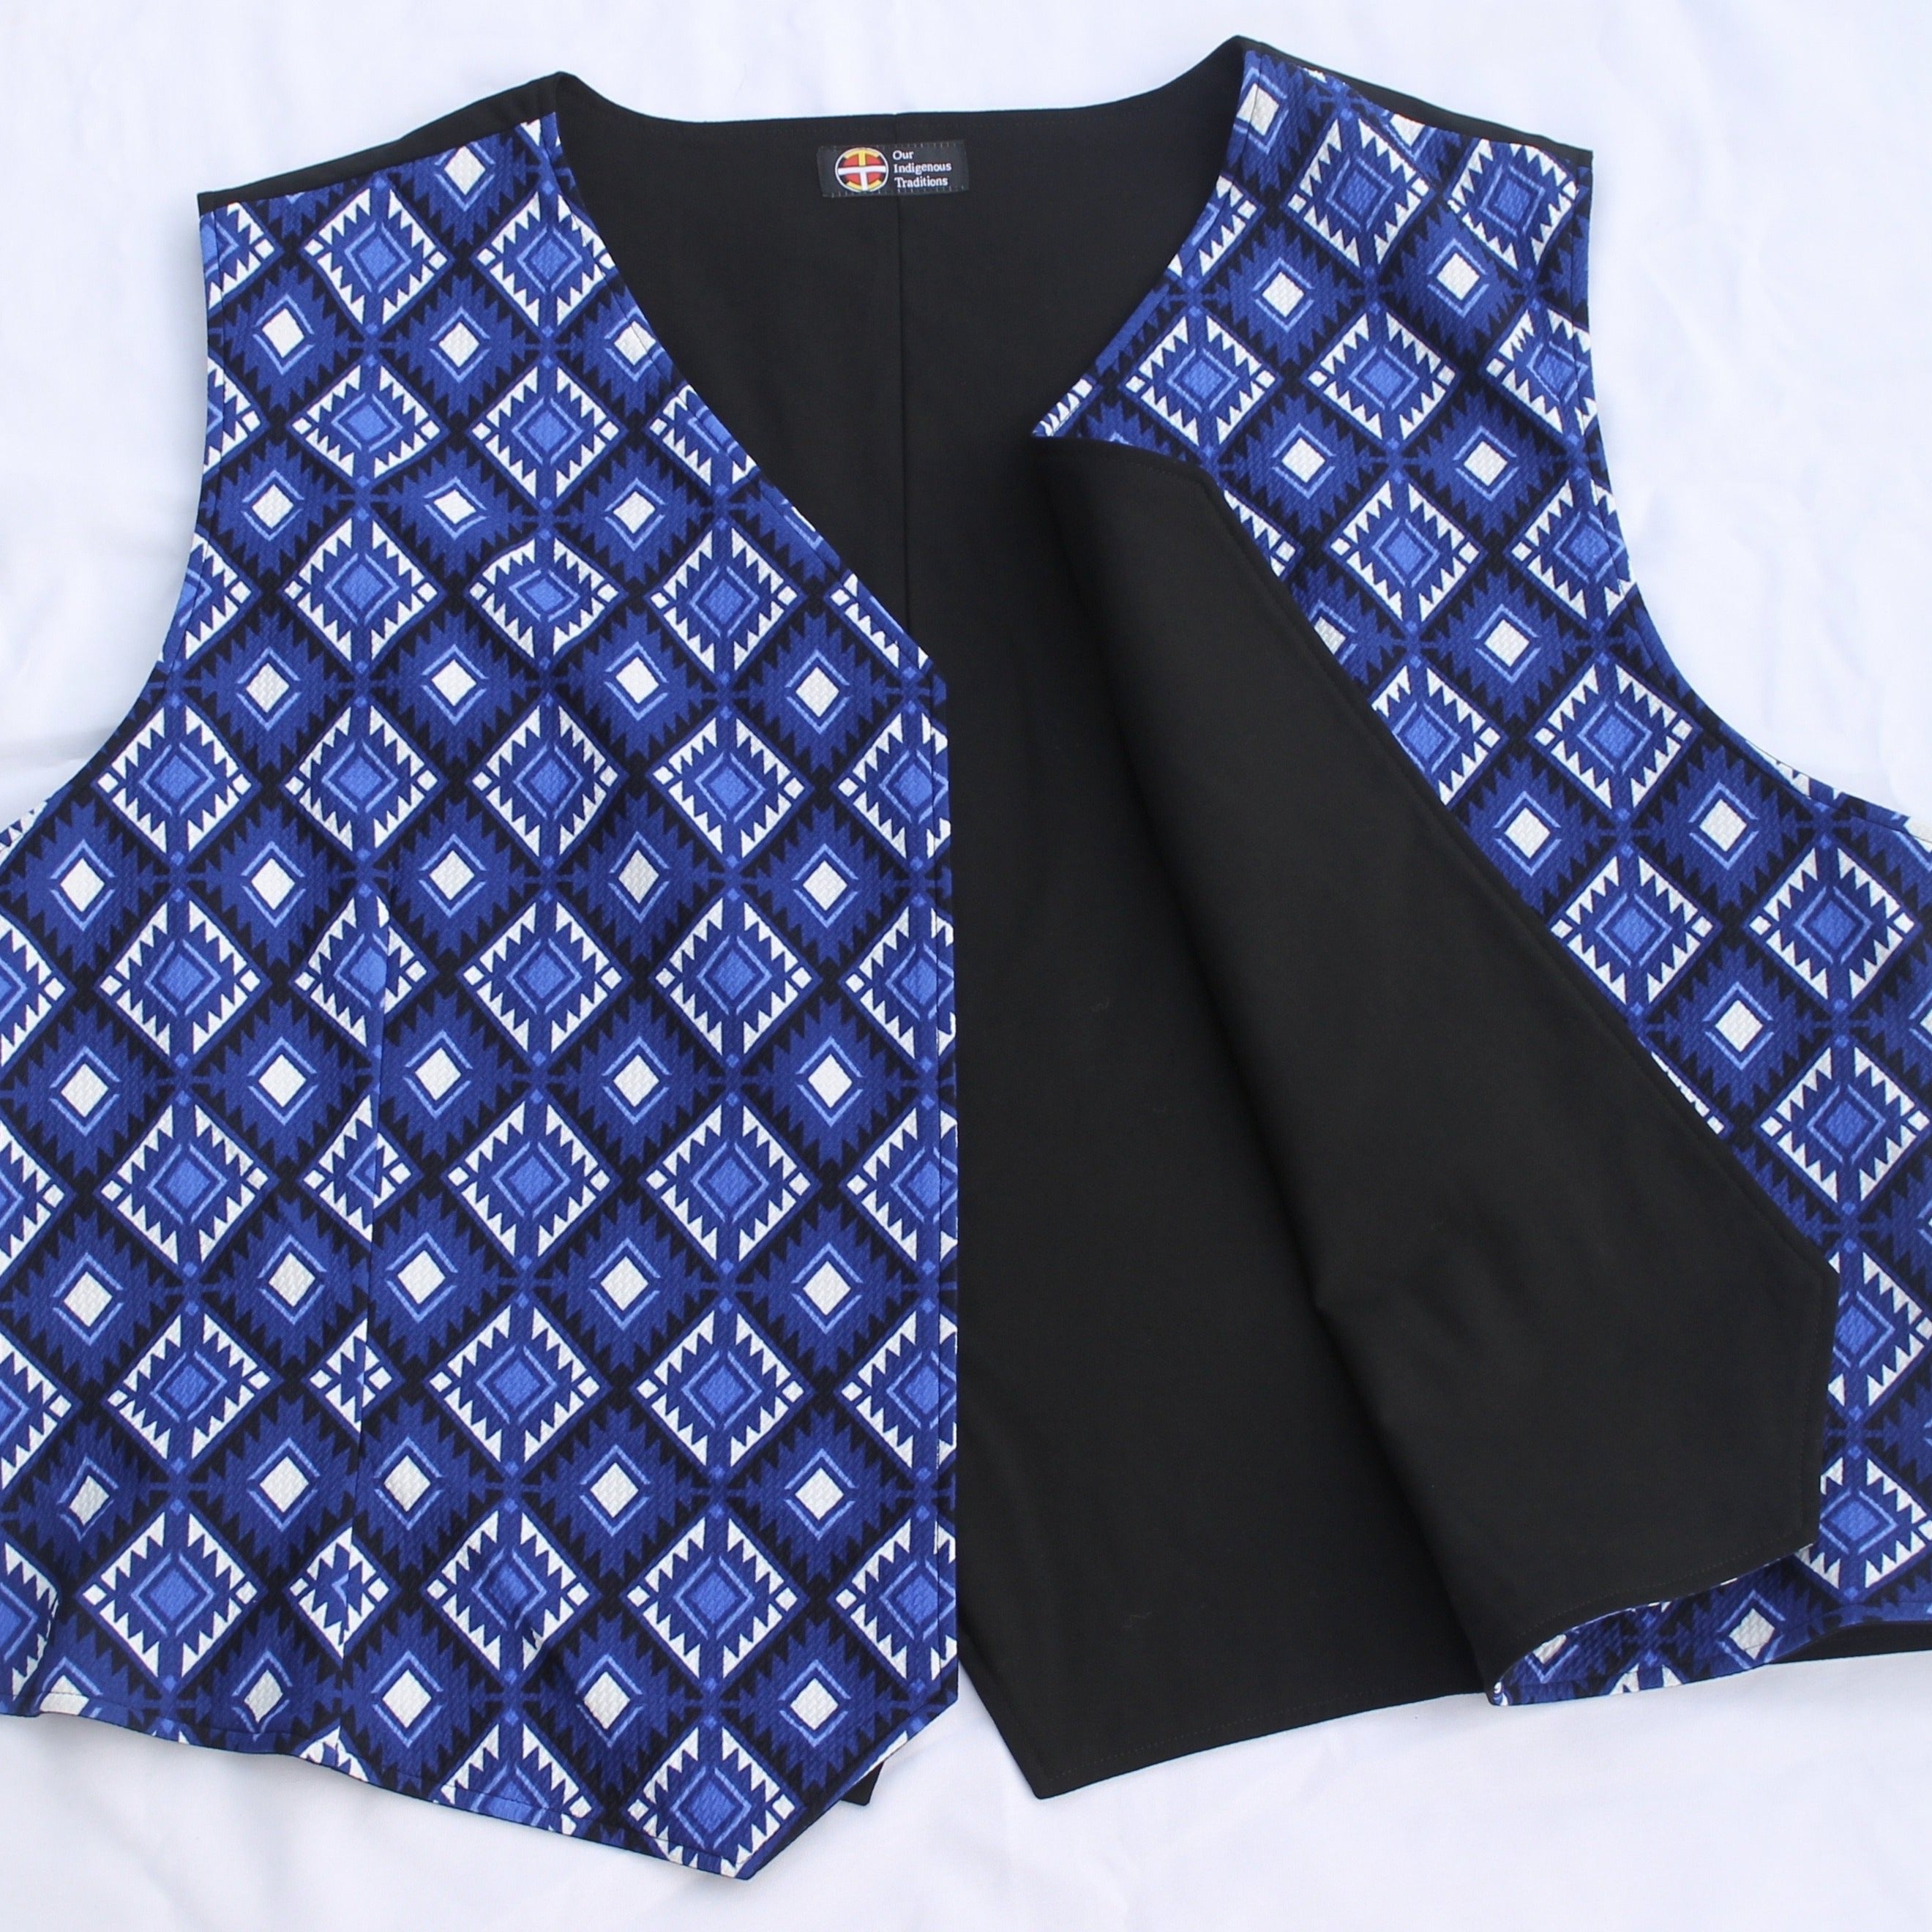 Blue/White Diamond Vest